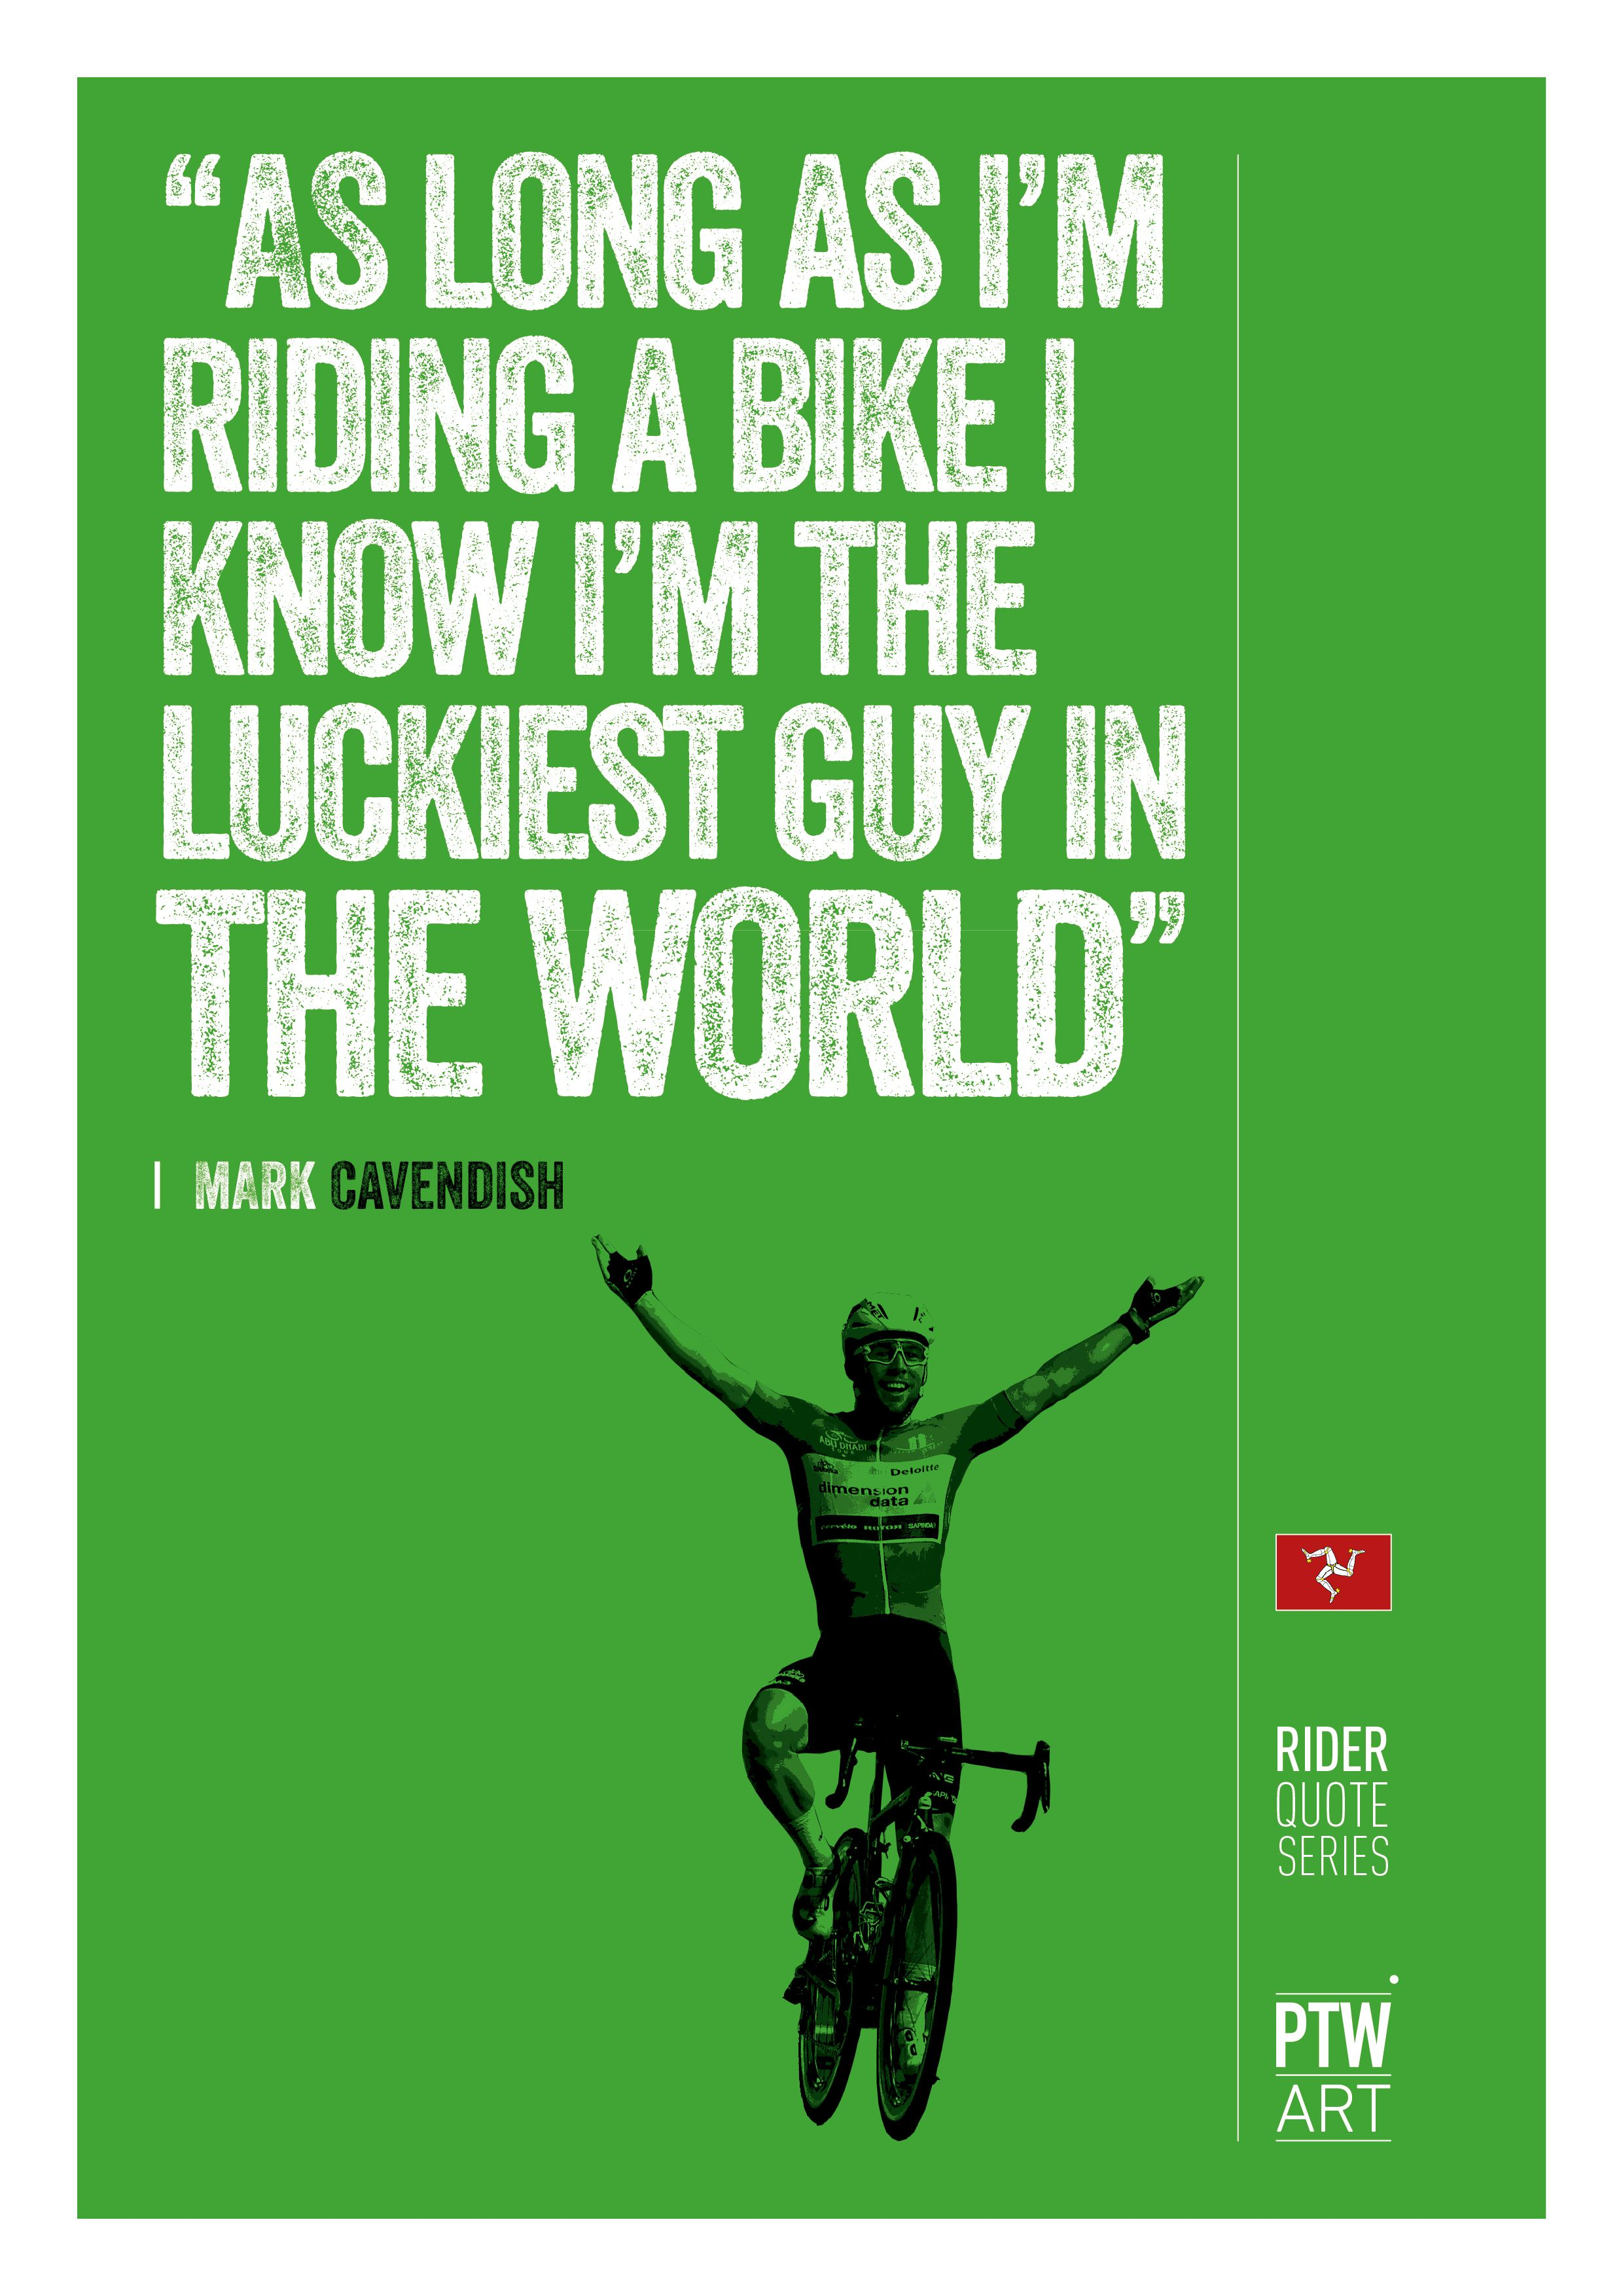 Pin By Larry Hughes On Cycling Quotes Cycling Quotes Bike Quotes Rider Quotes